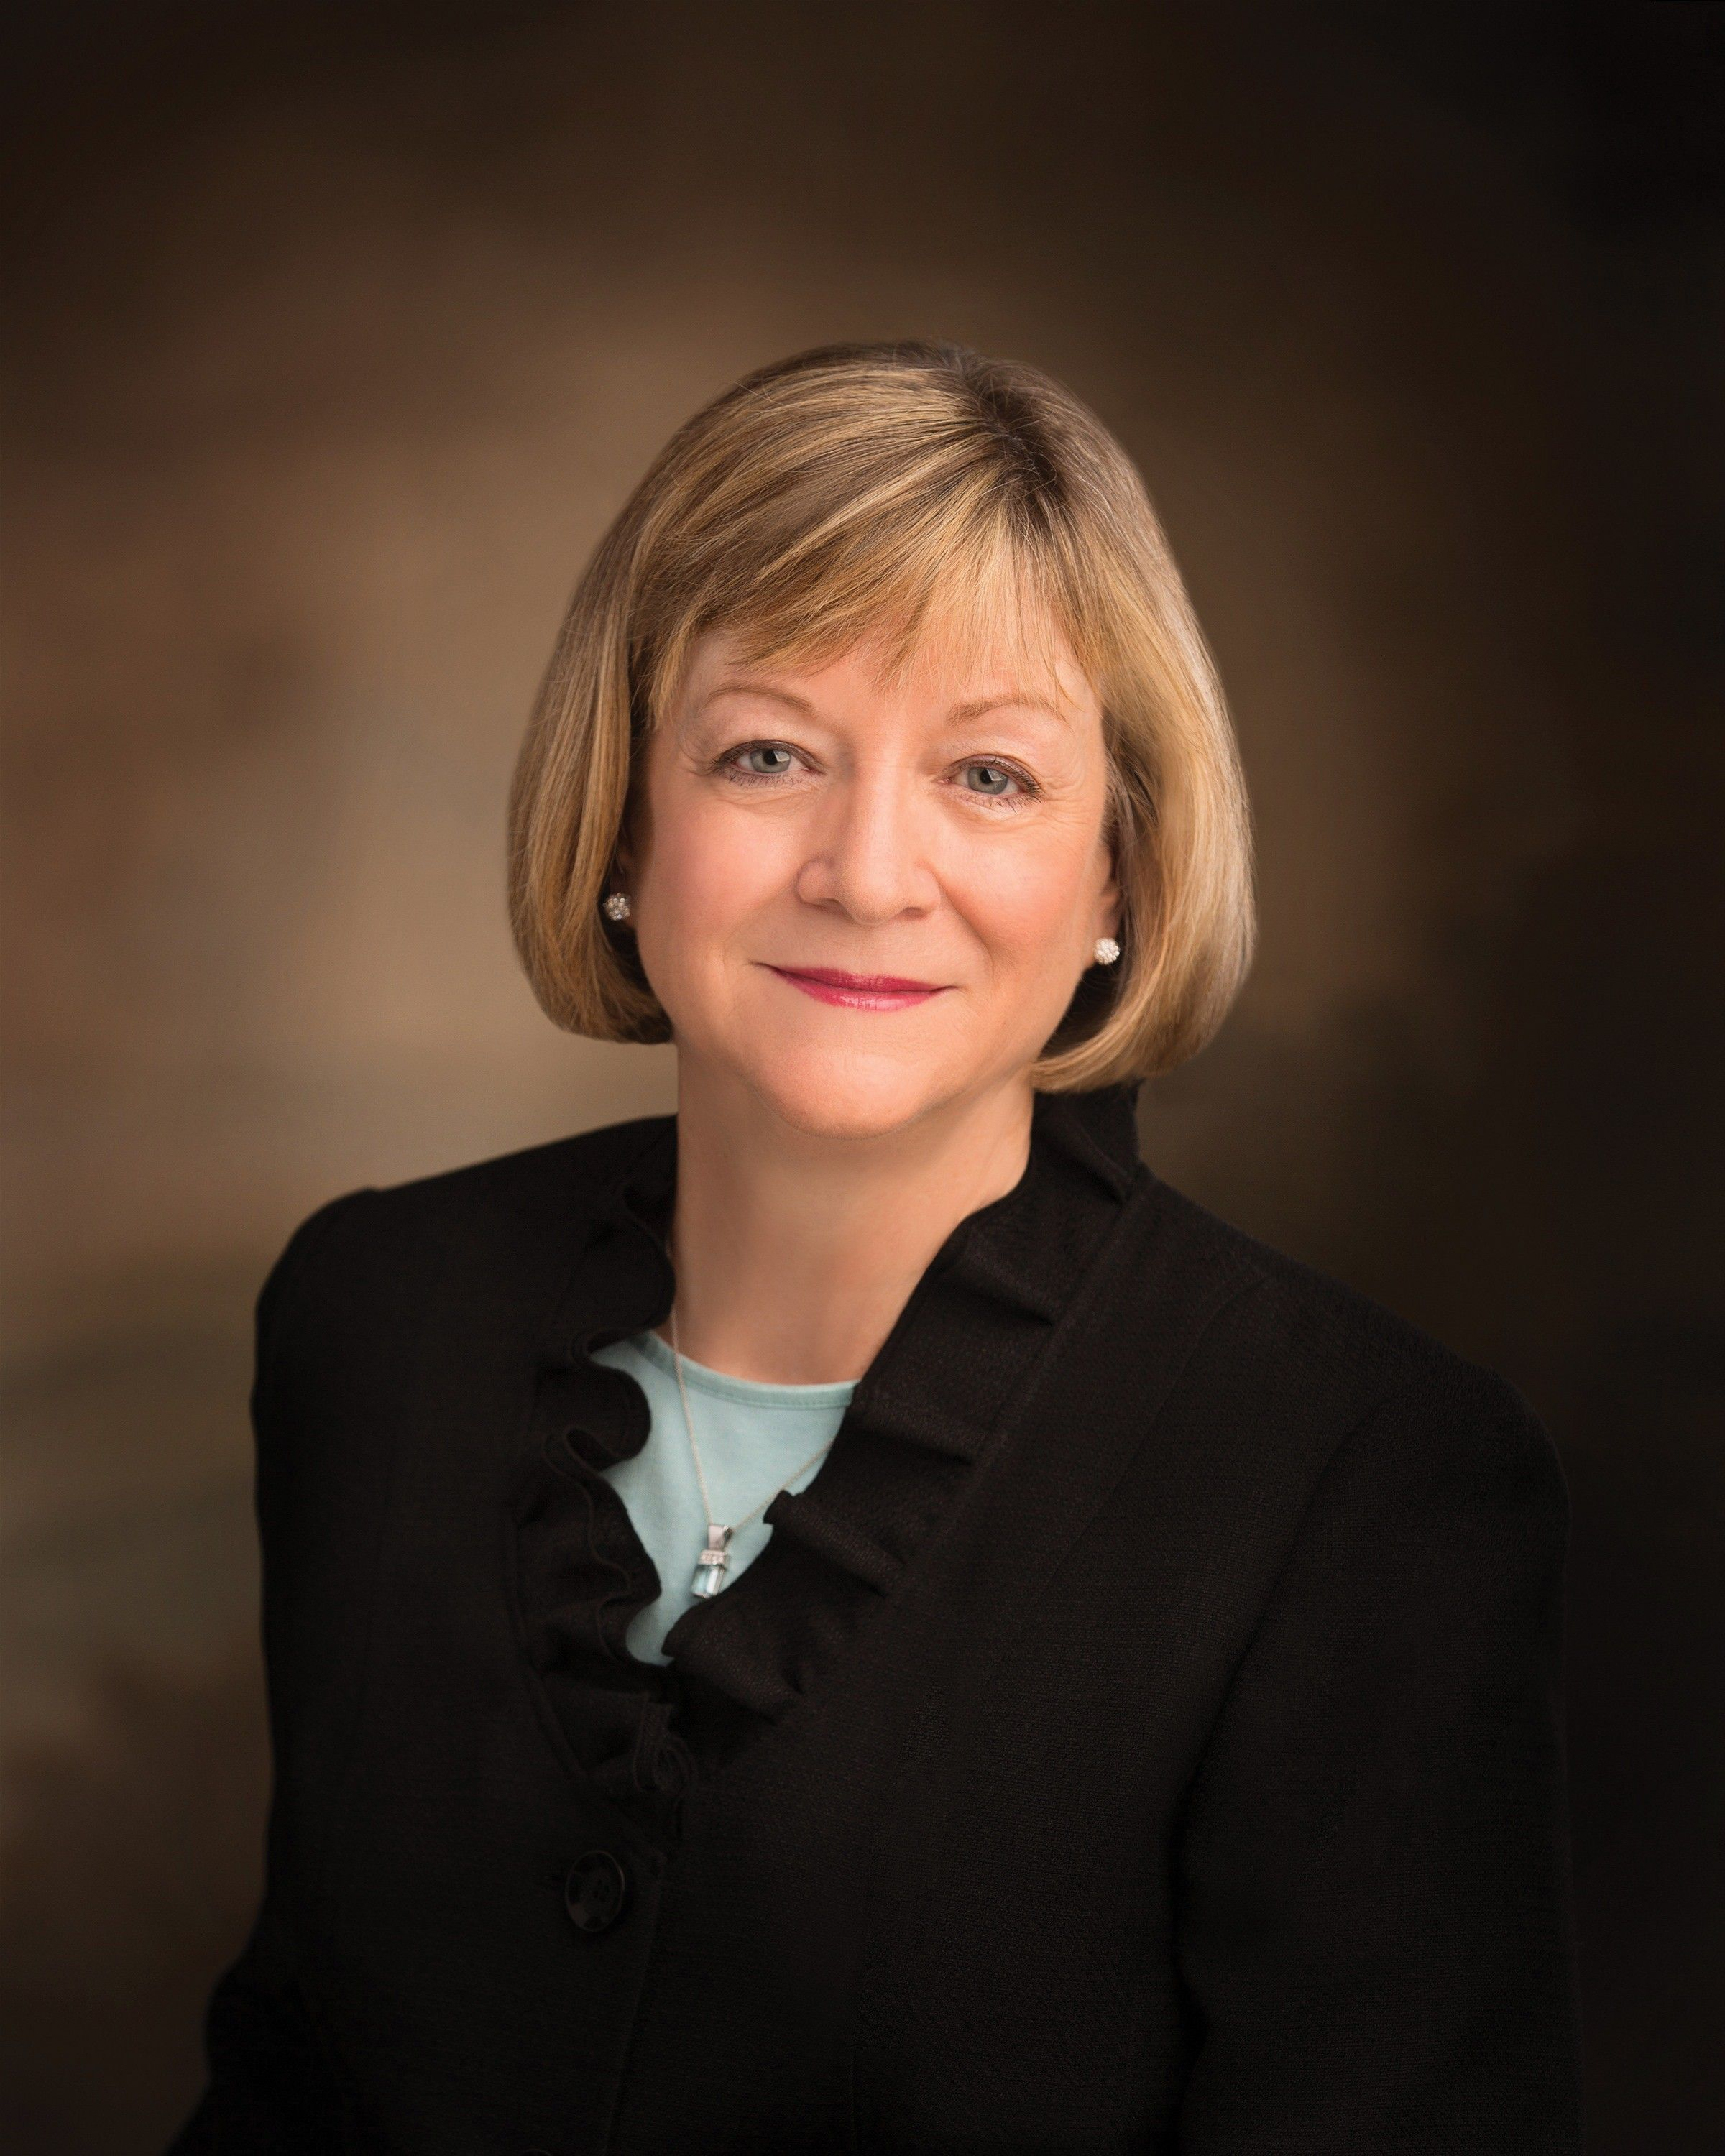 The official portrait of Bonnie L. Oscarson, who served as the 14th general president of the Young Women from 2013 to 2018.